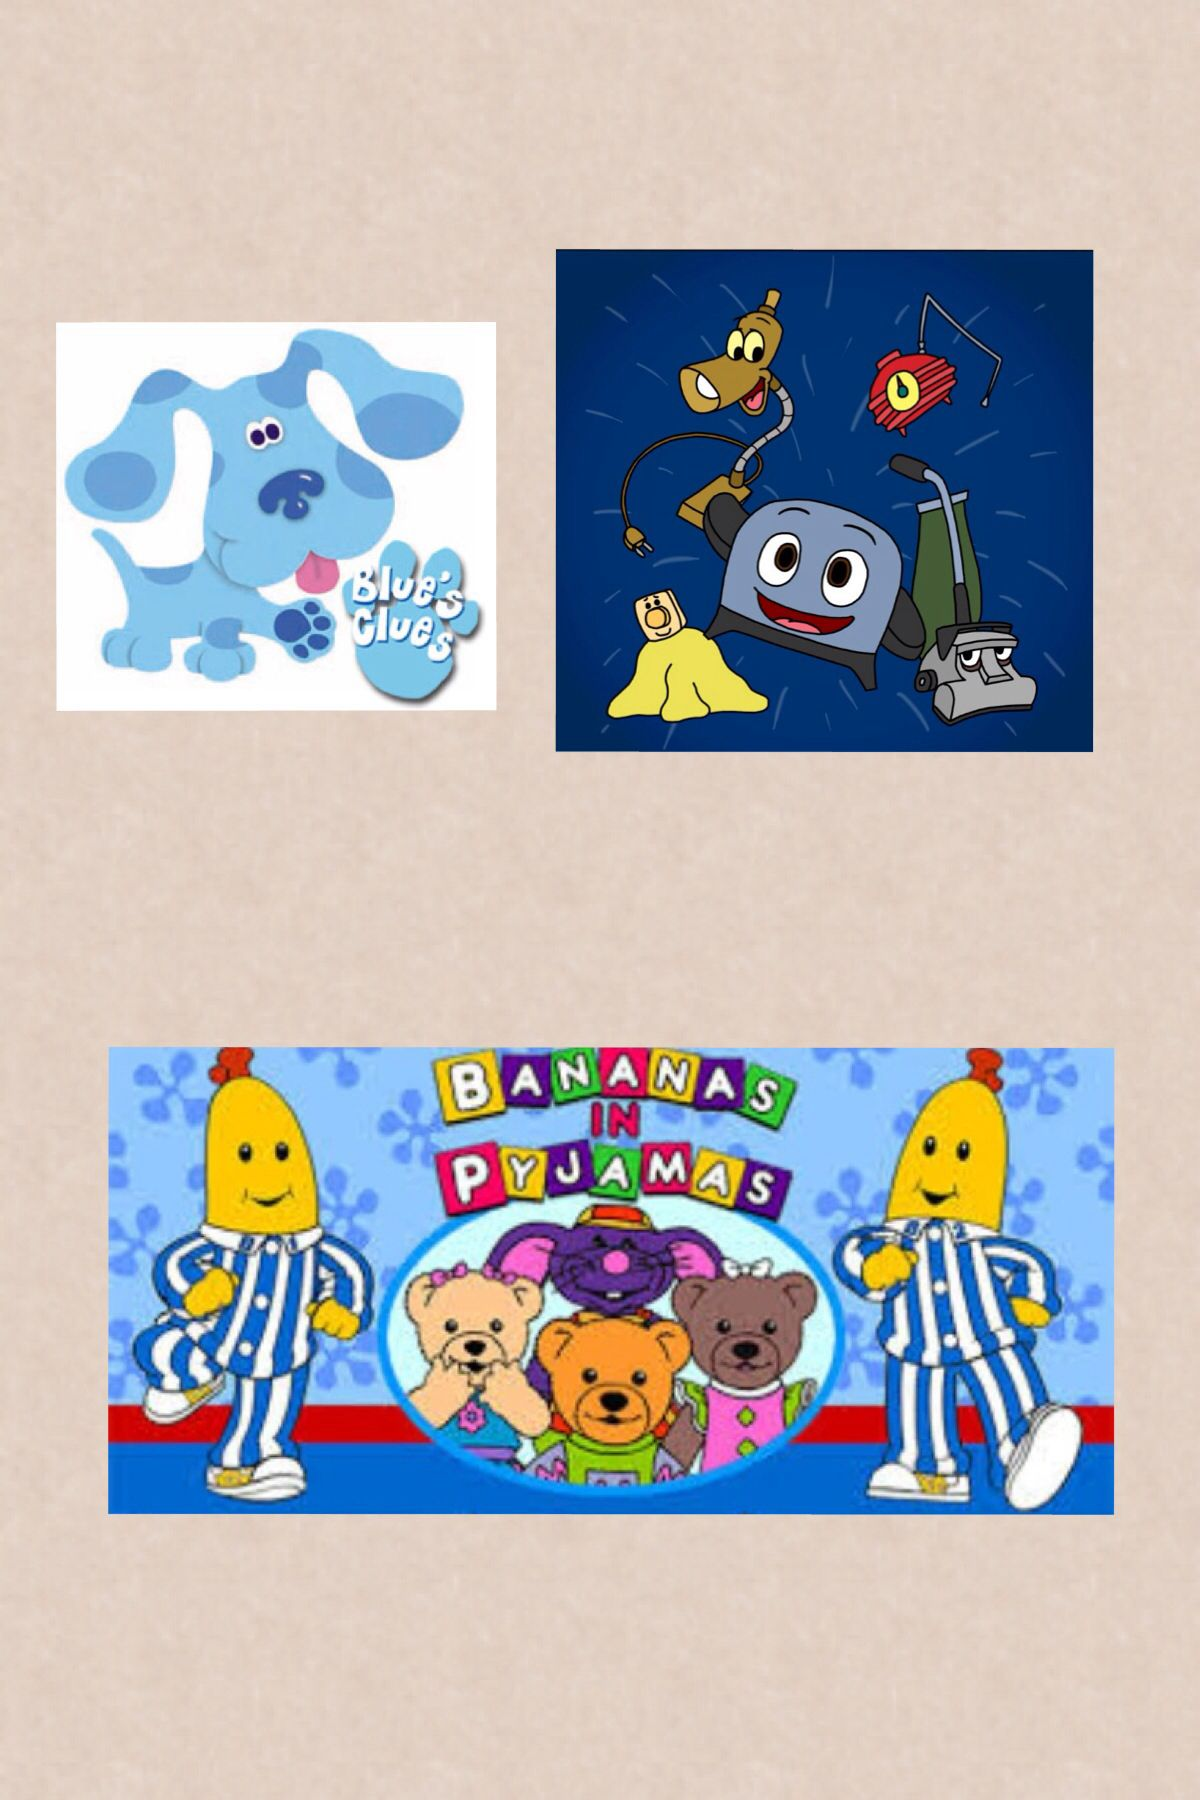 blues clues the brave little toaster and bananas in pajamas i use